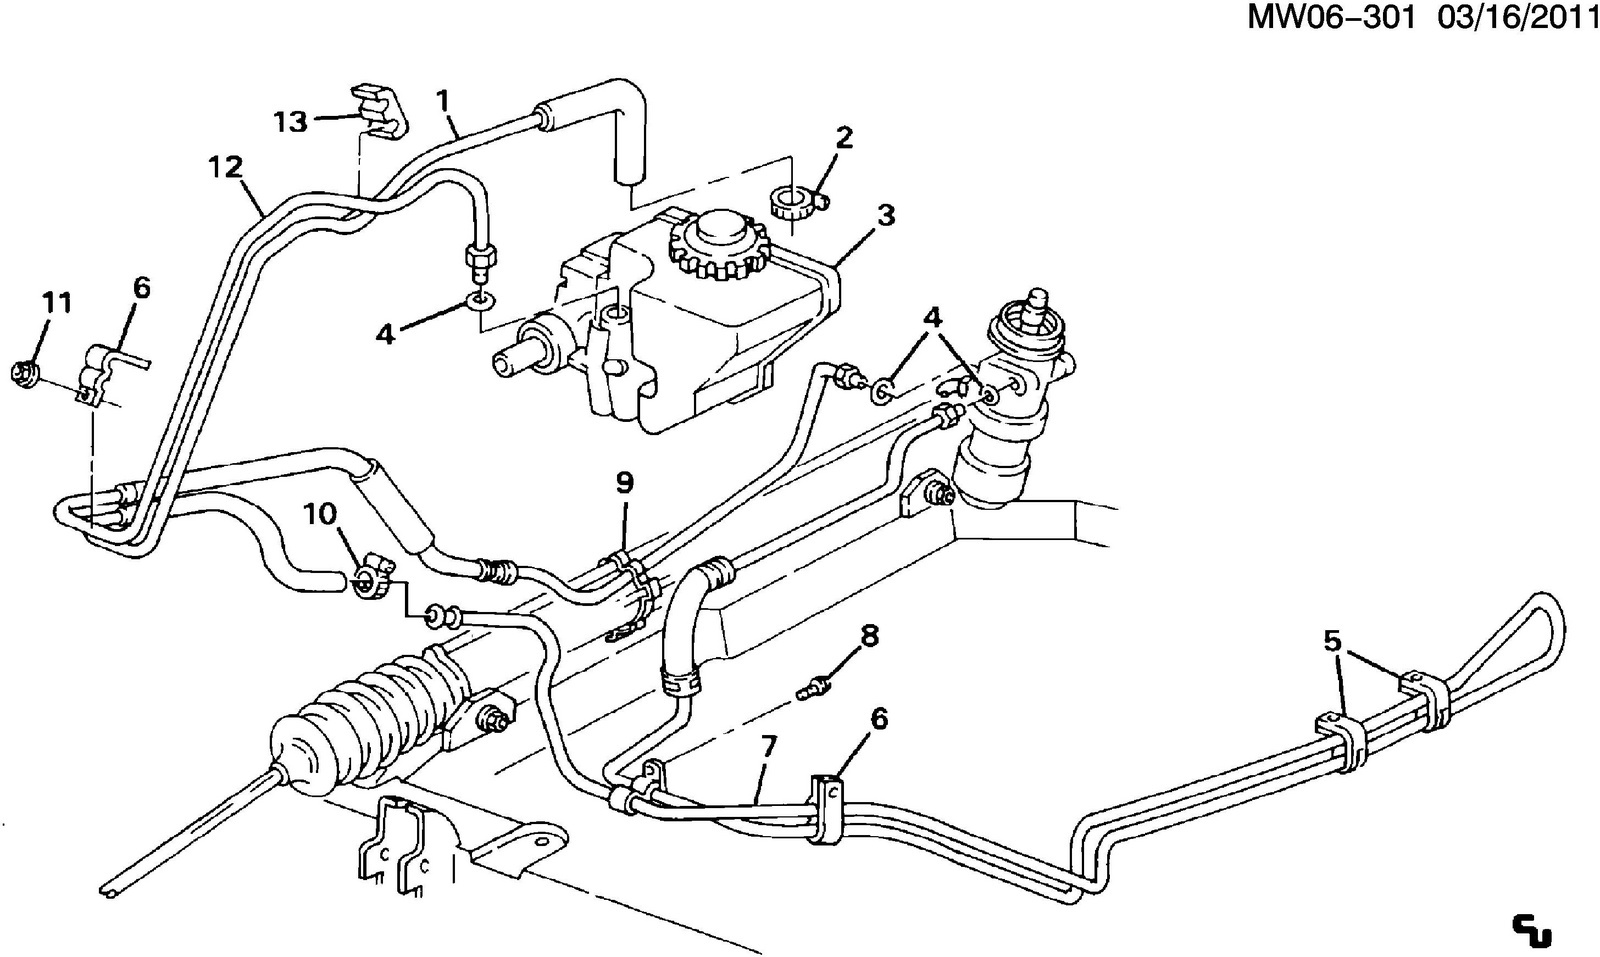 Rear Picture Brake Sentra Nissan Diagram